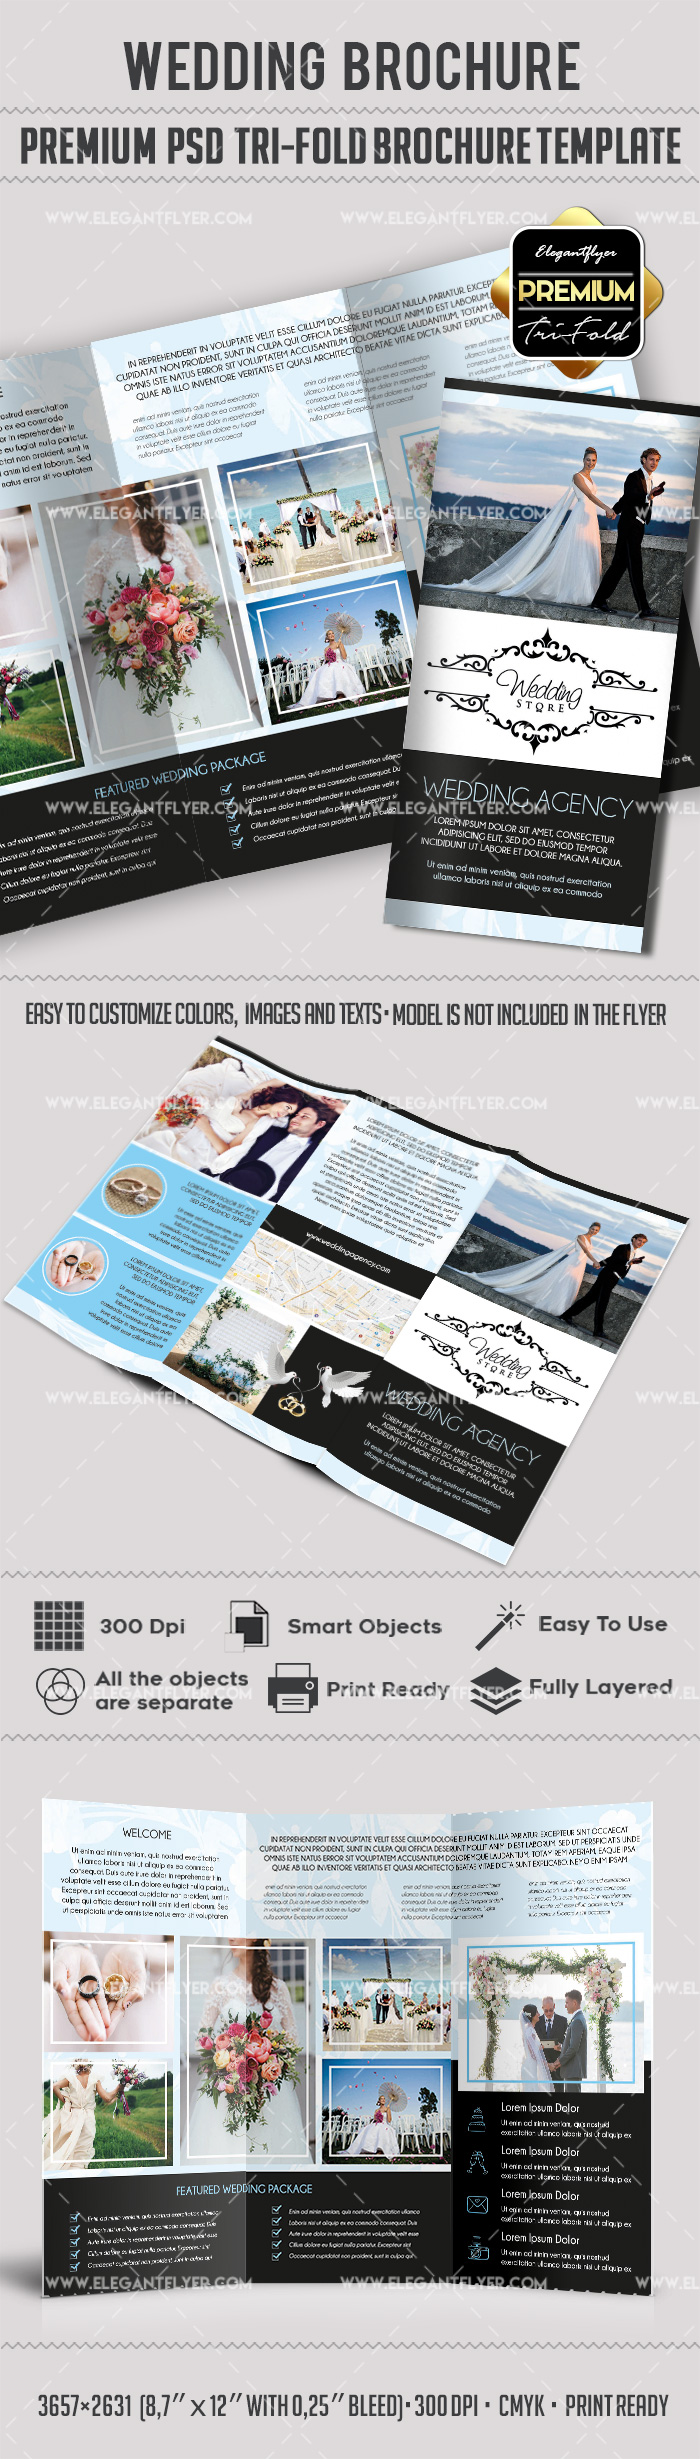 Template for Wedding Agency